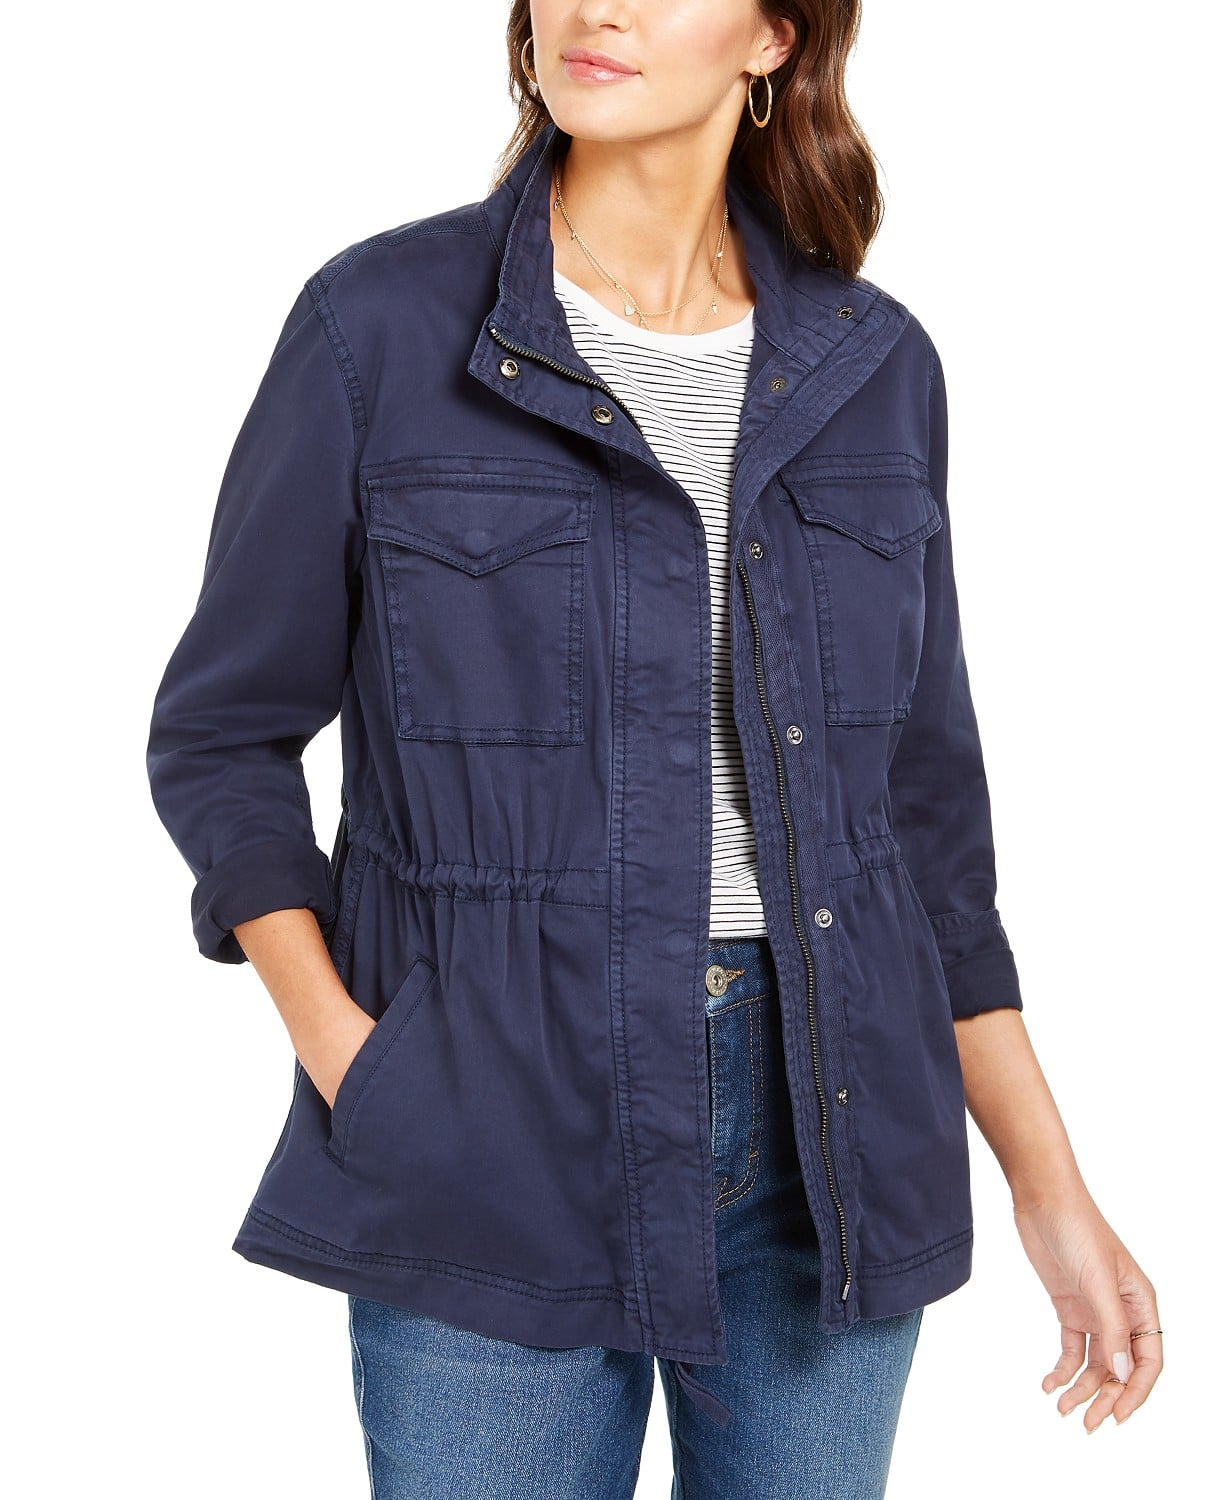 Style & Co Women's Twill Jacket $23.73, 32 Degrees Hooded Raincoat $35 & More + Free Shipping on $25+ $29.99